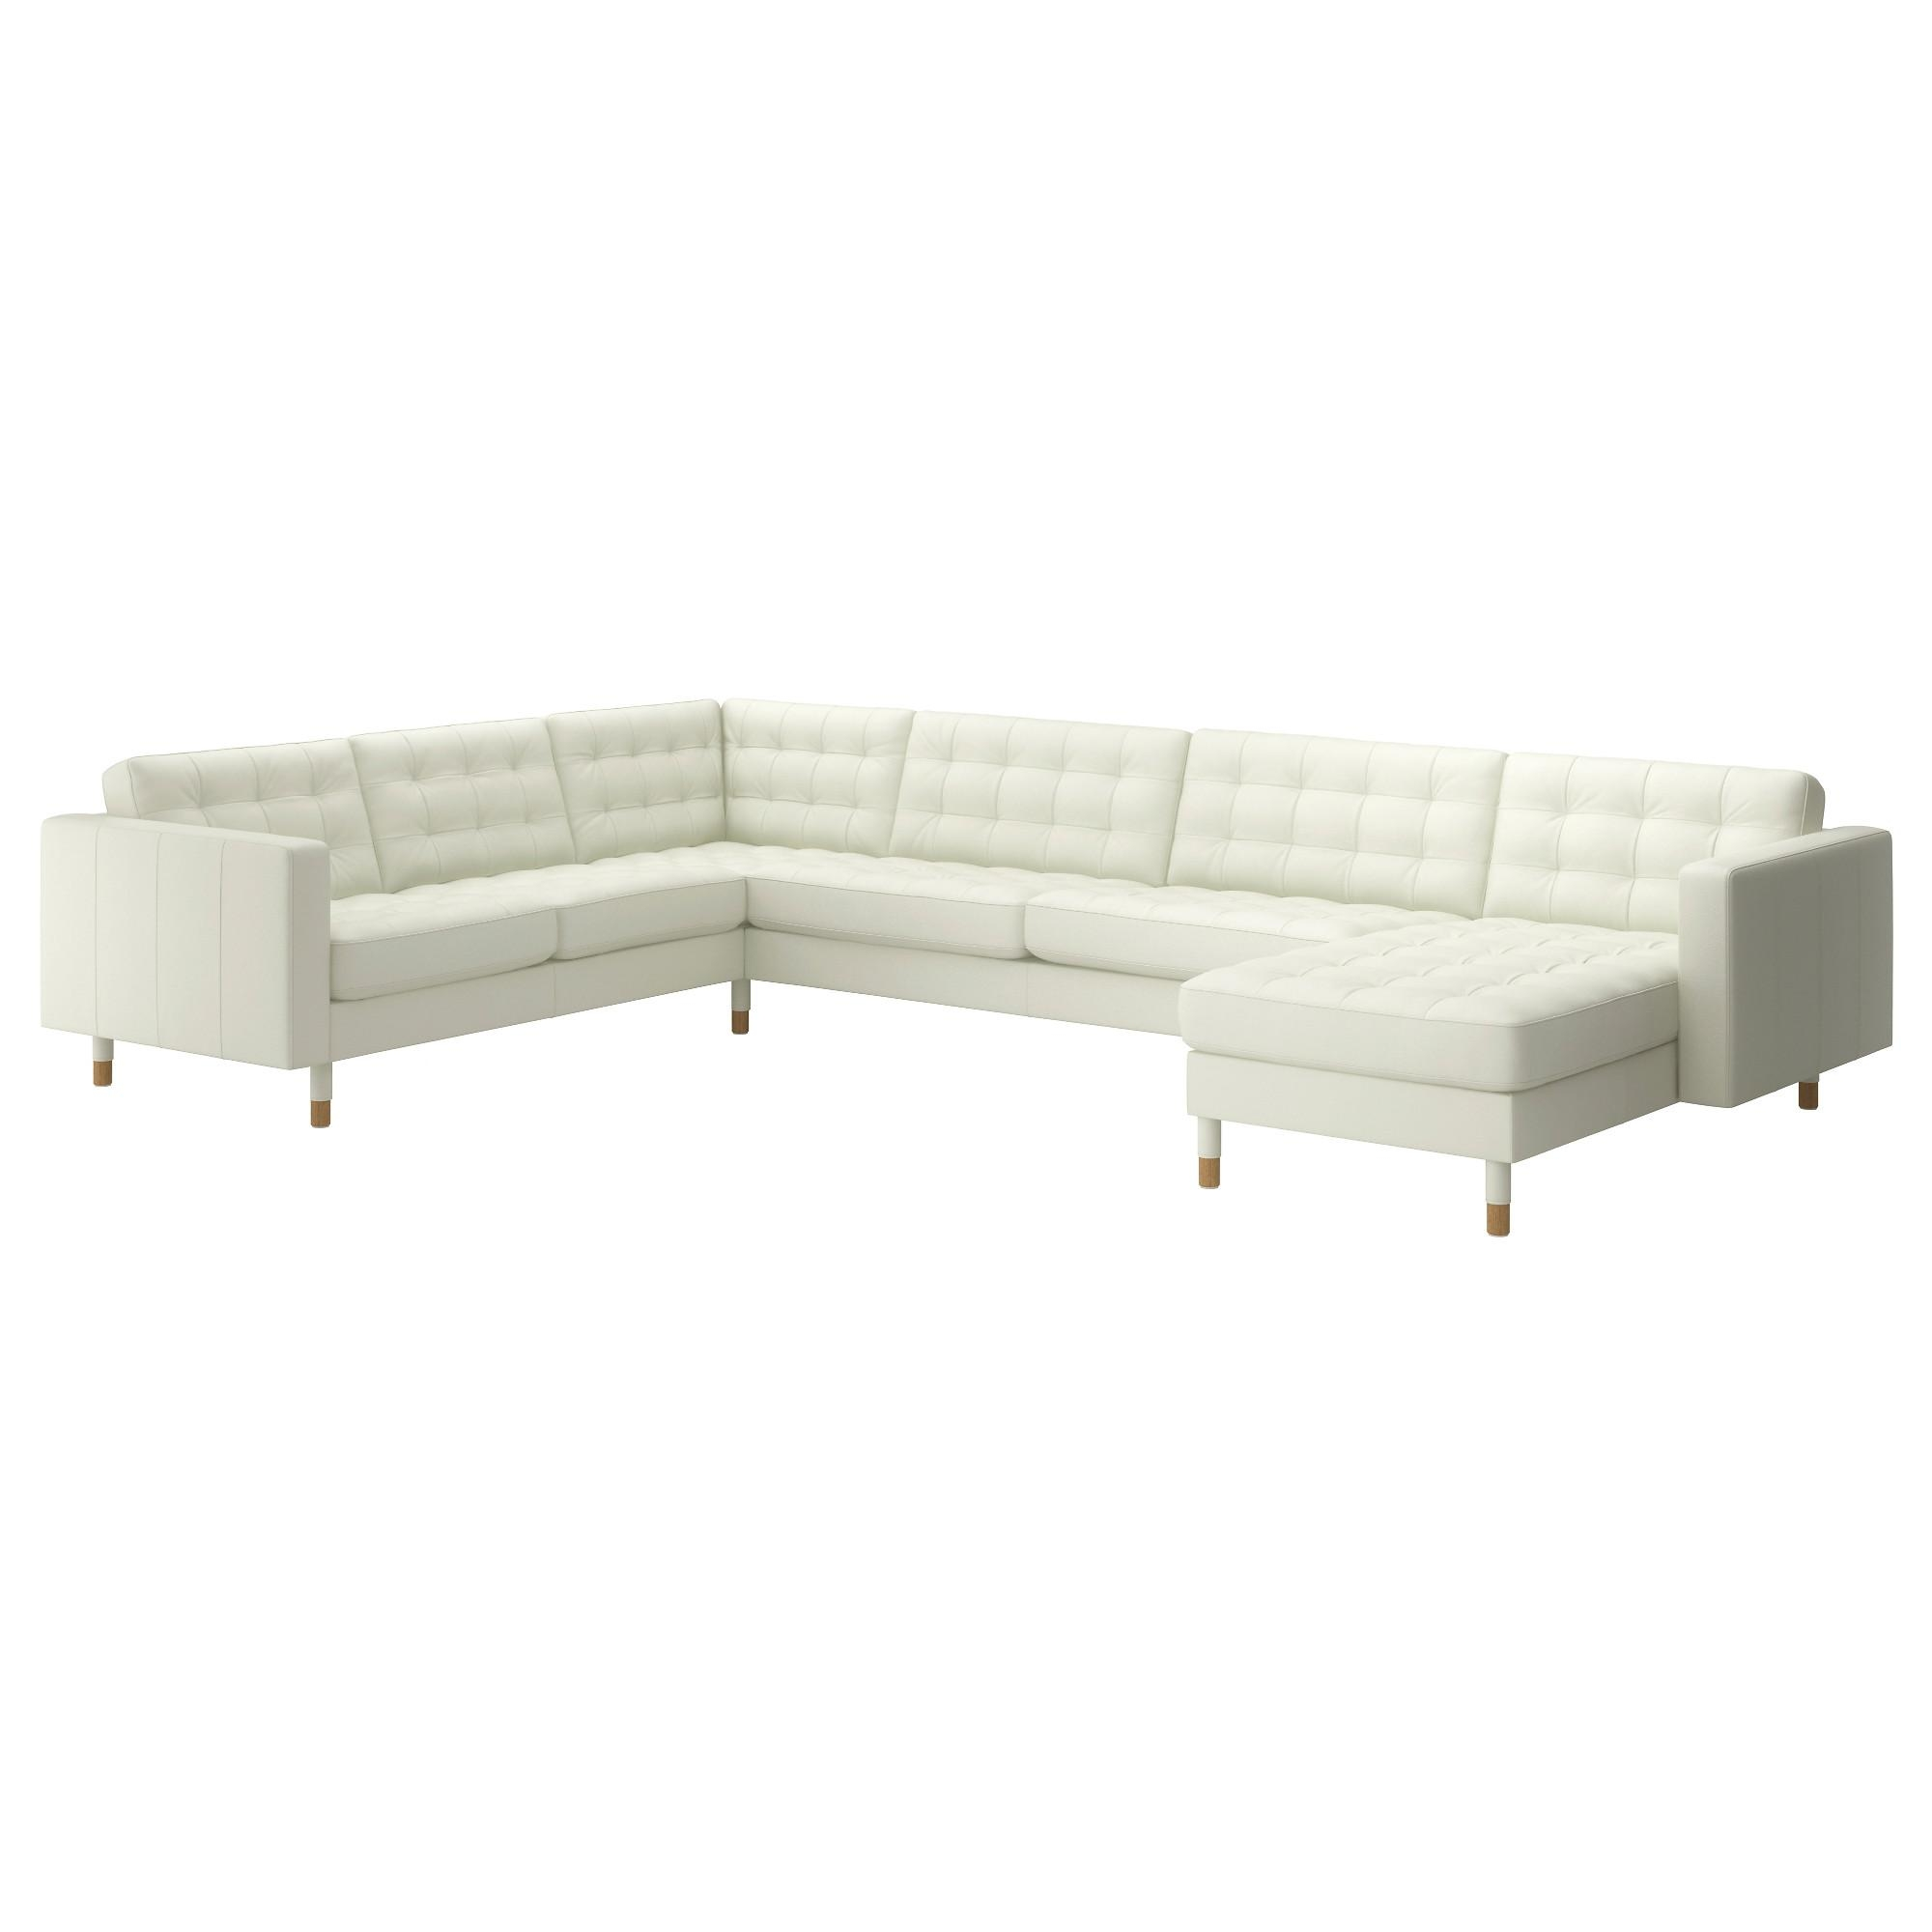 Sectional Sofas & Couches – Ikea With 2 Seat Sectional Sofas (View 11 of 15)